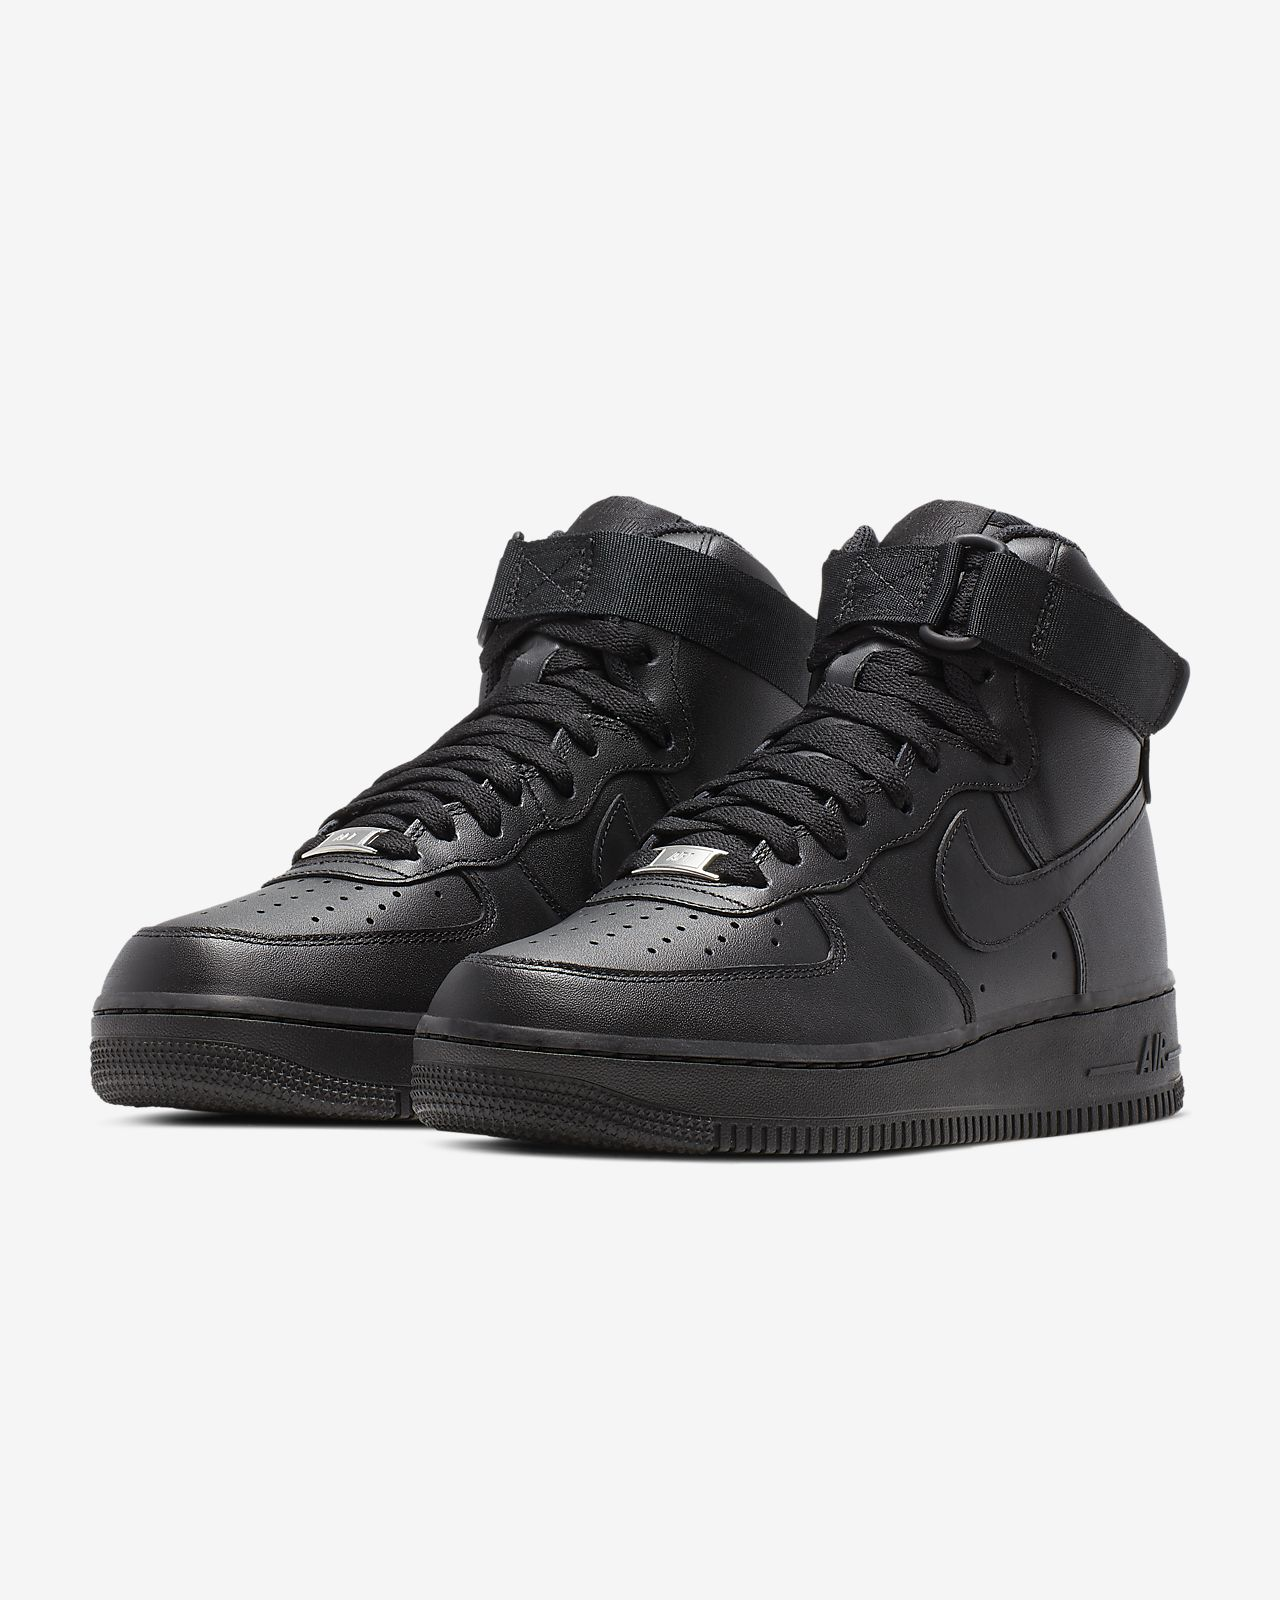 2air force 1 08